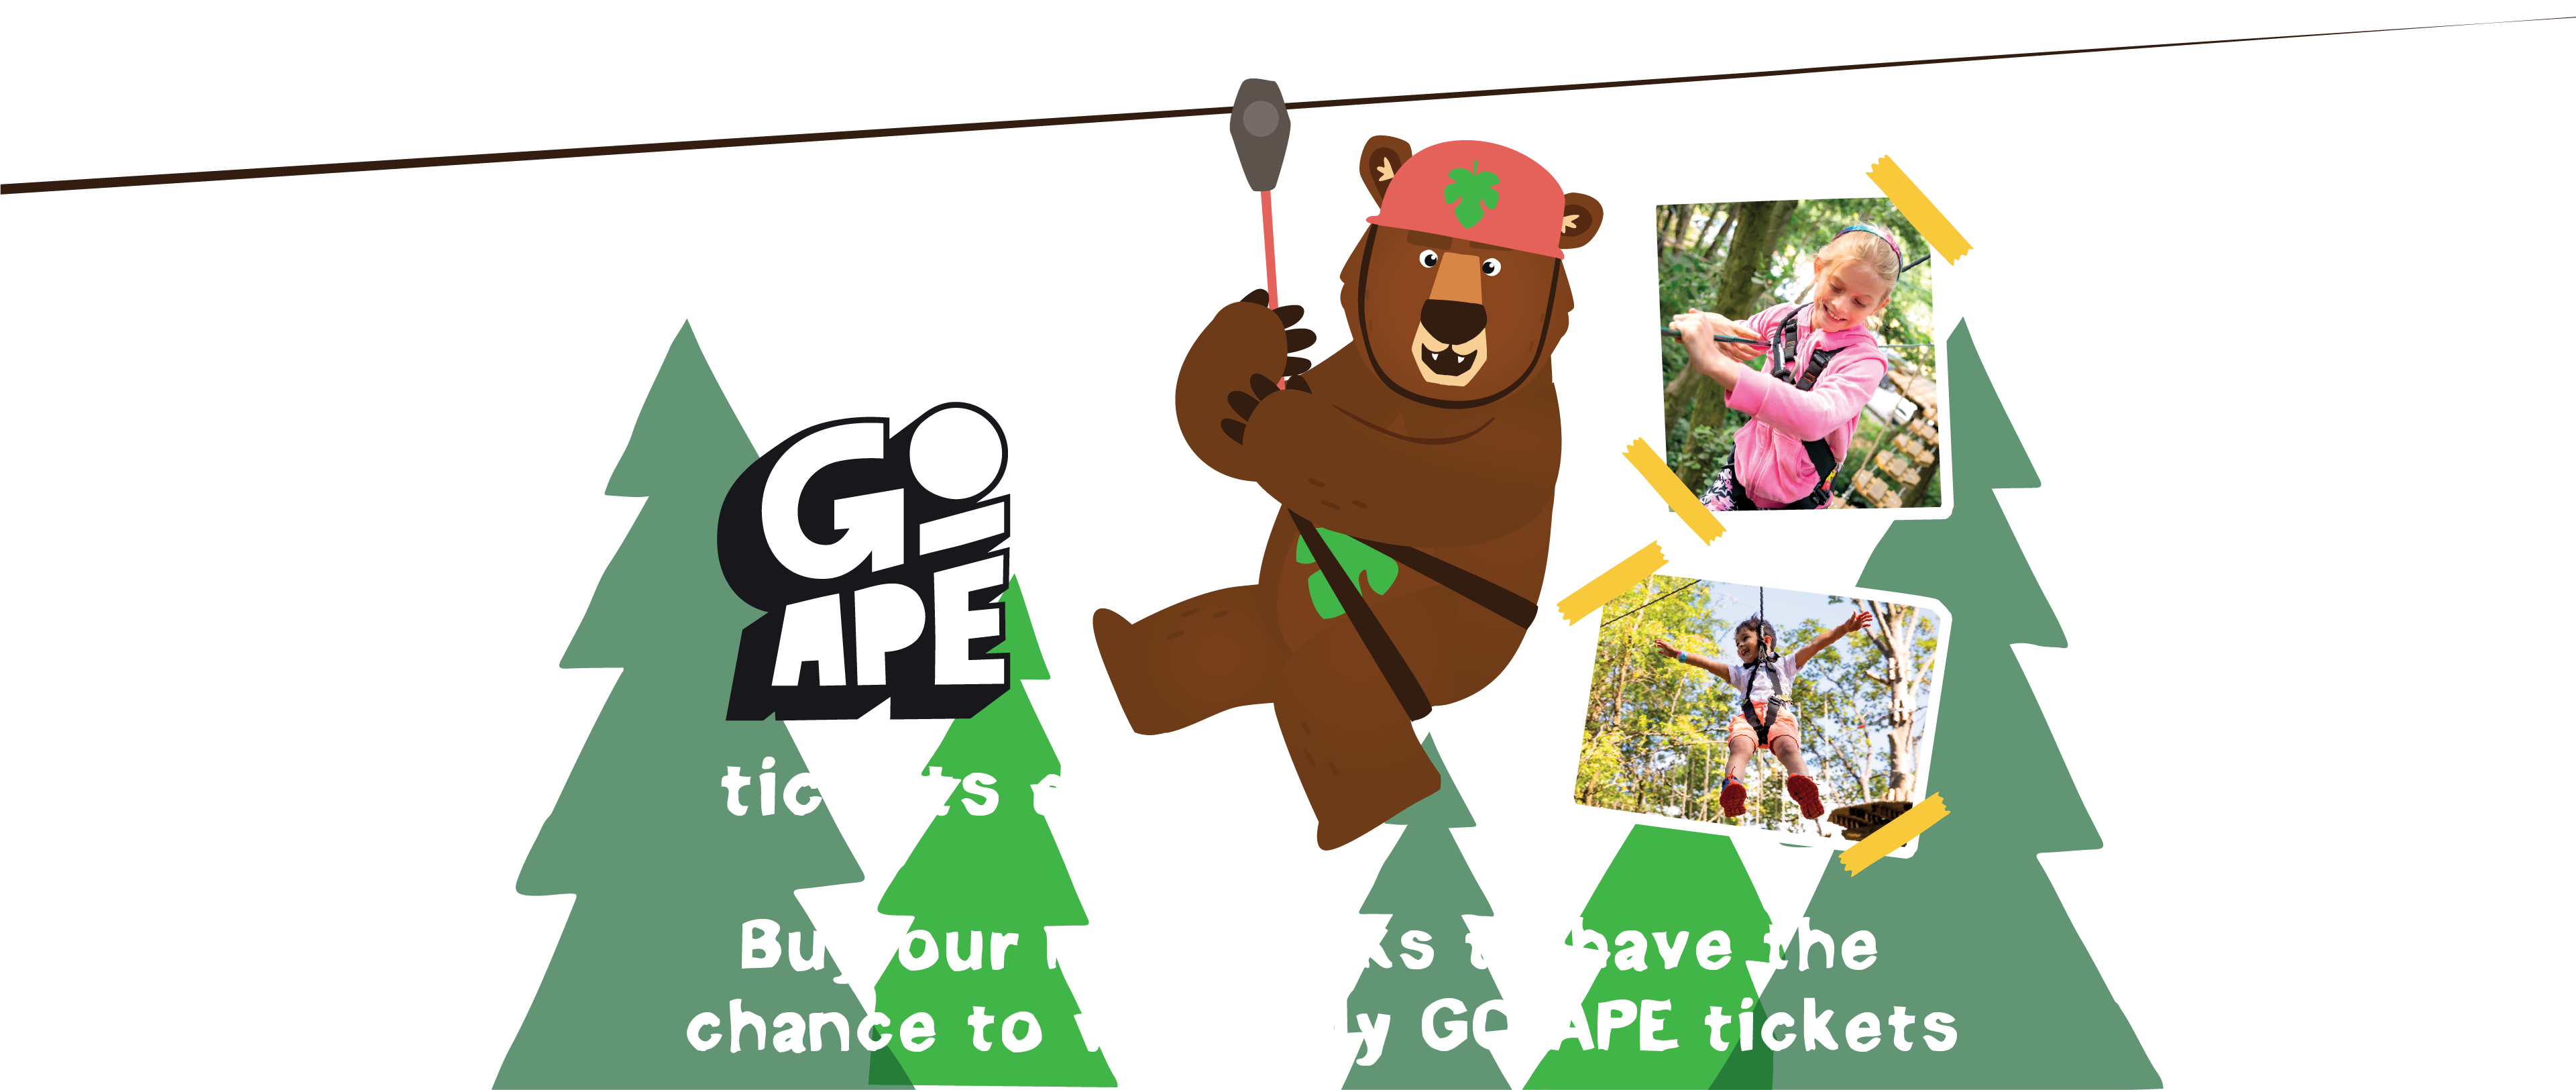 WIN! Go Ape Tickets Daily. Buy Multipacks to have the change to win daily go ape tickets